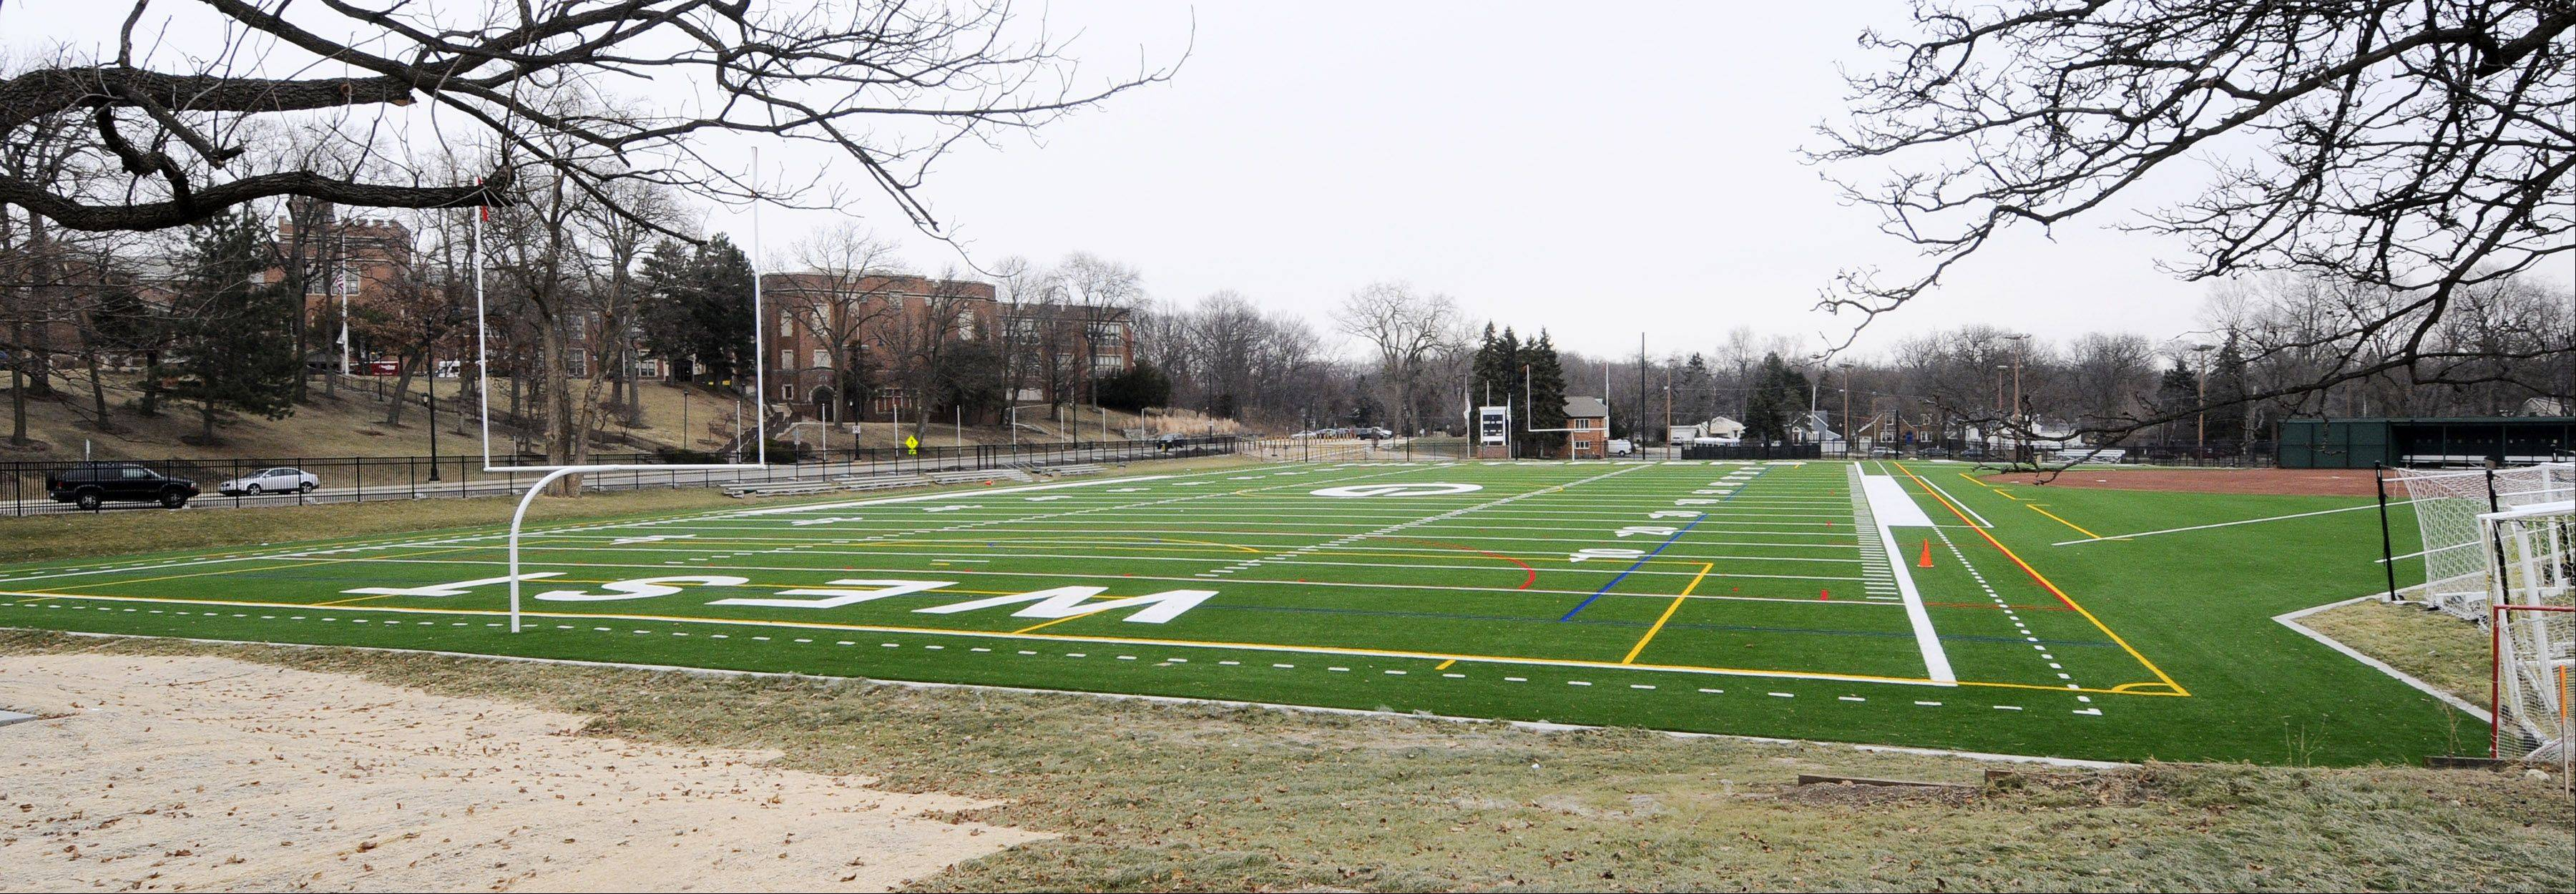 The Glen Ellyn plan commission is considering a proposal to install lights at Memorial Field across from Glenbard West High School.